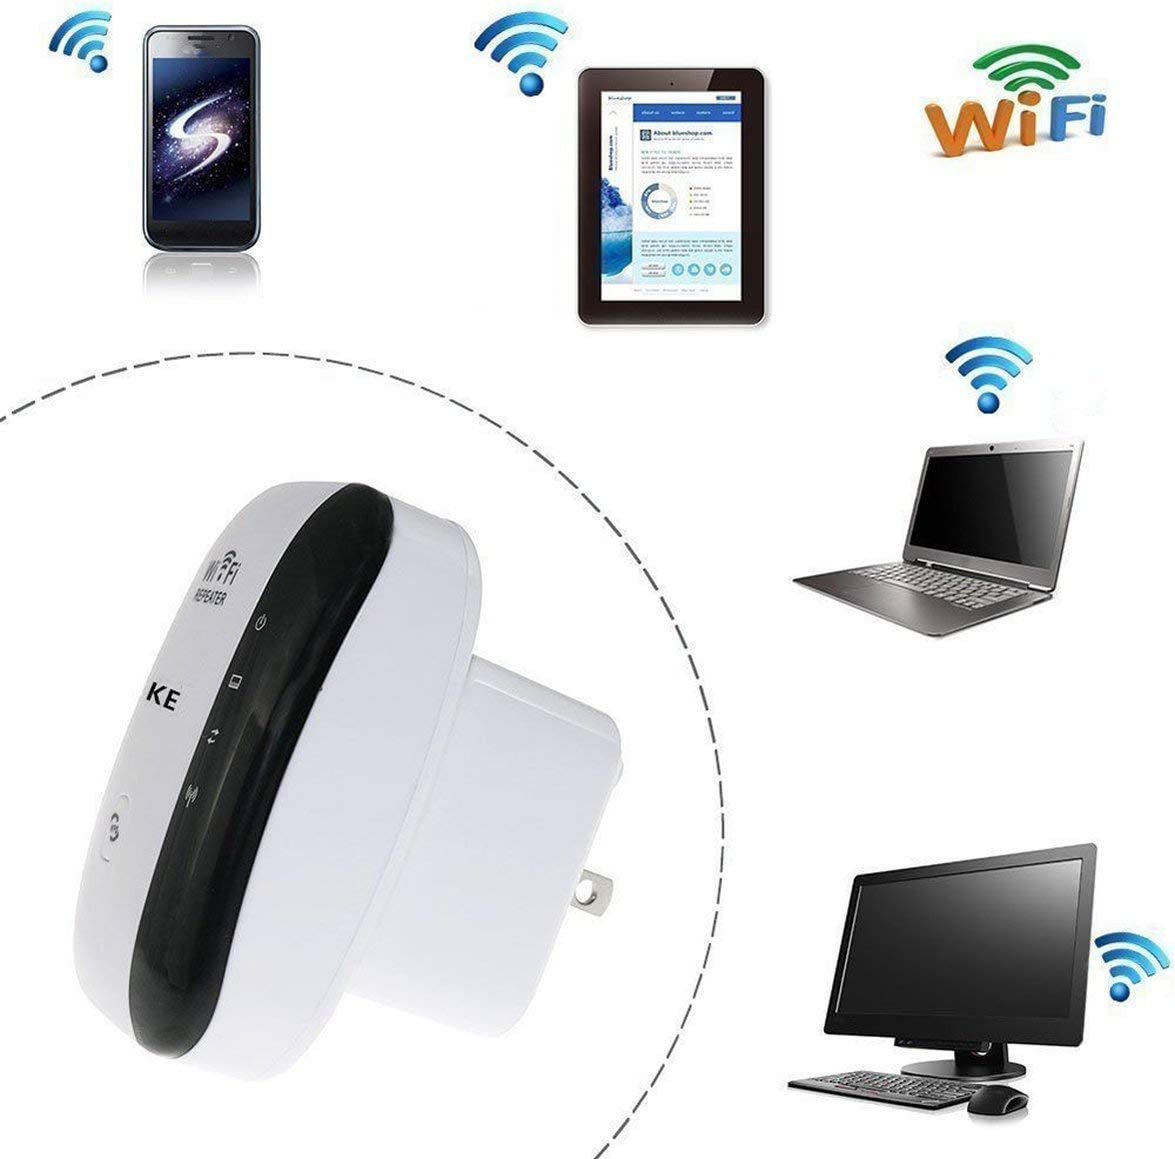 Romirofs WiFi Repeater 802.11a//b//g//n Network Extender Amplifier Wall Plug Design WiFi Signal Booster for Office Home 300M